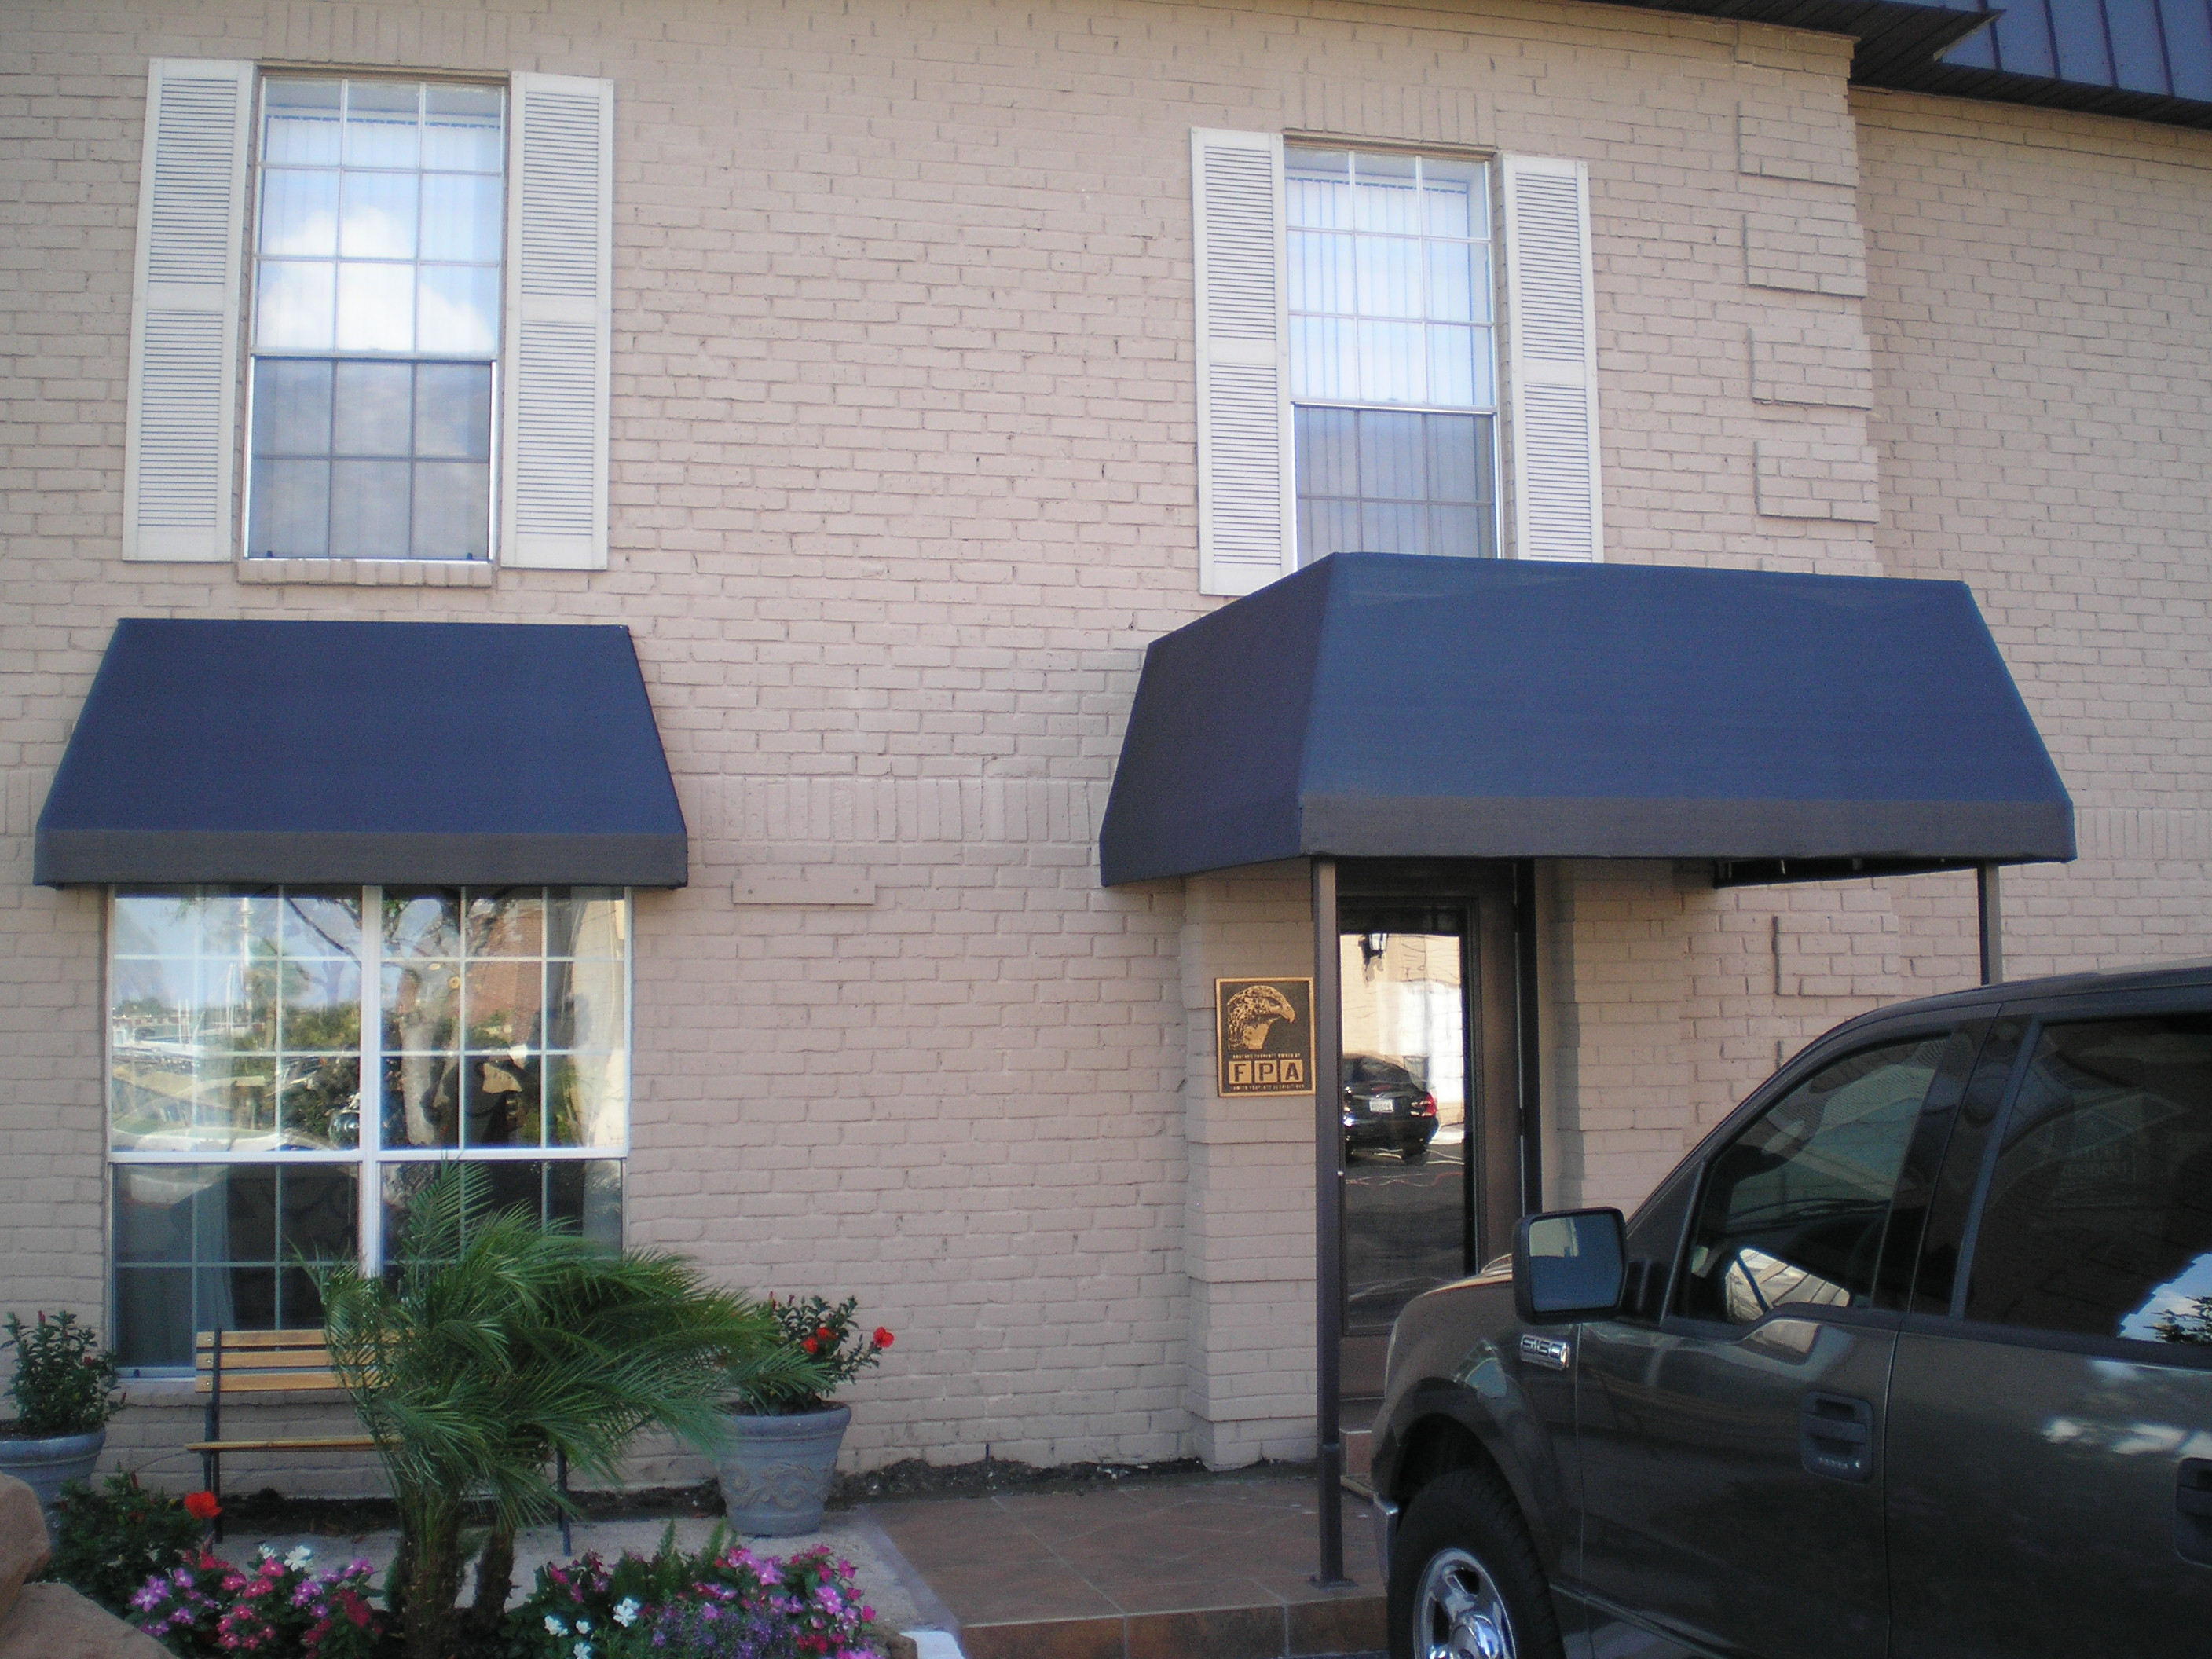 Door and window Awnings